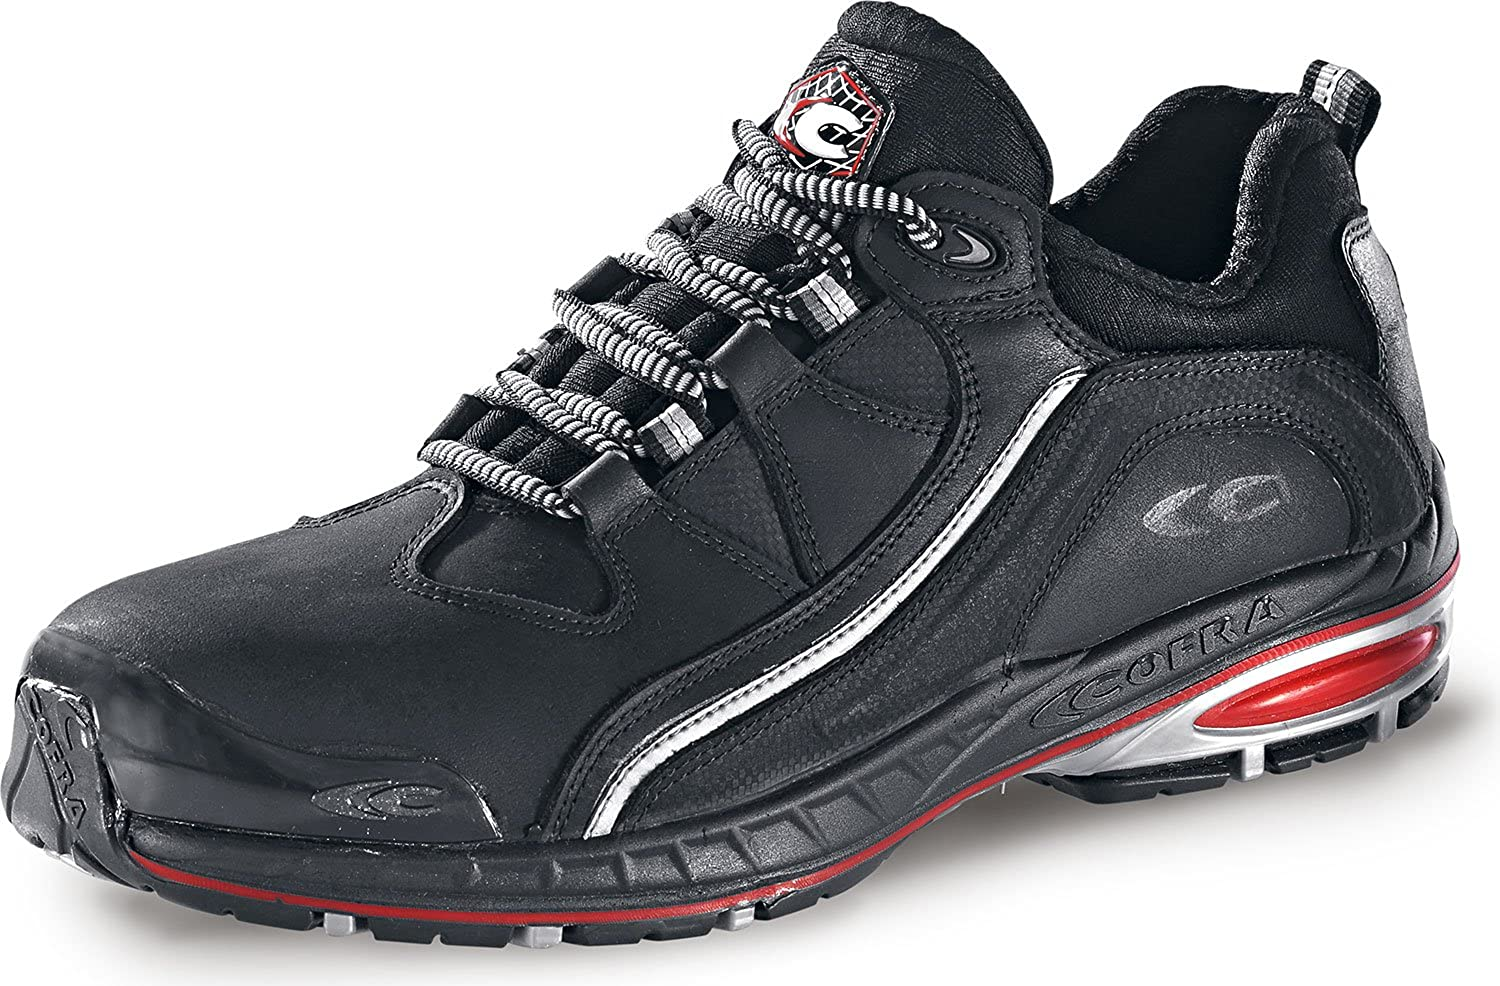 Cofra 19120-000.W44 Safety shoes Halfback S3 SRC Size 44 in Black